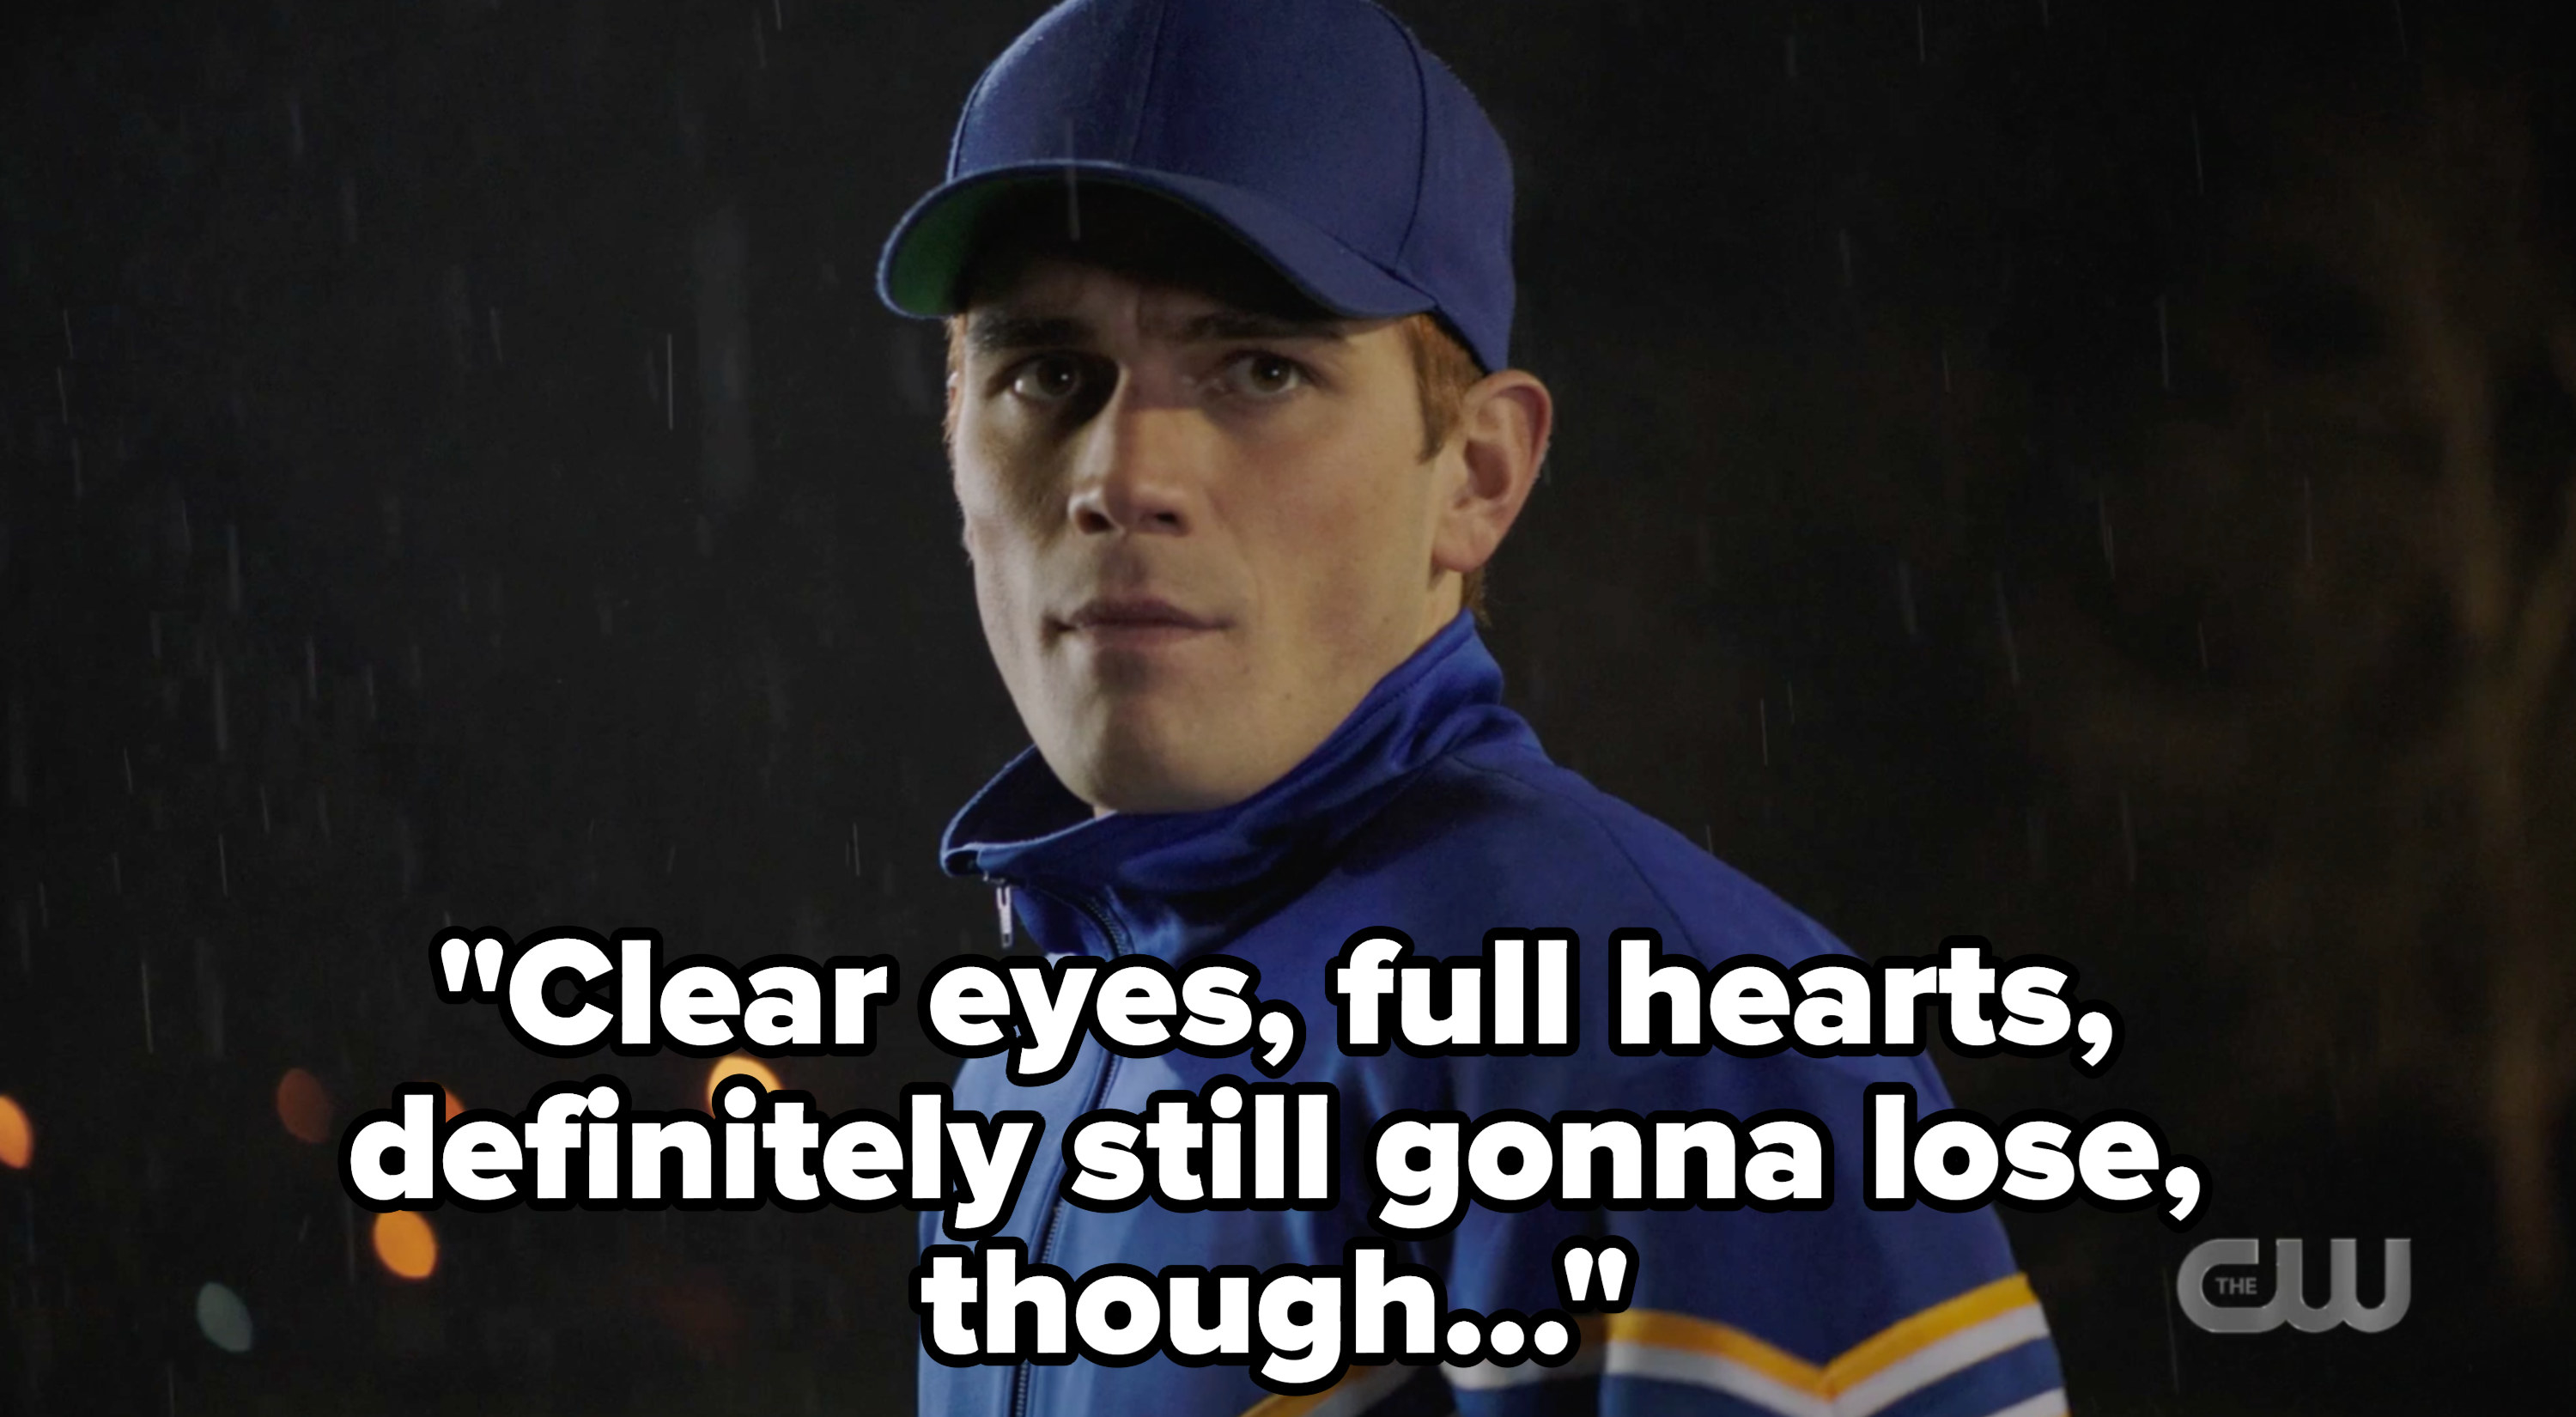 """Coach Archie with """"clear eyes, full hearts, definitely still gonna lose though..."""""""